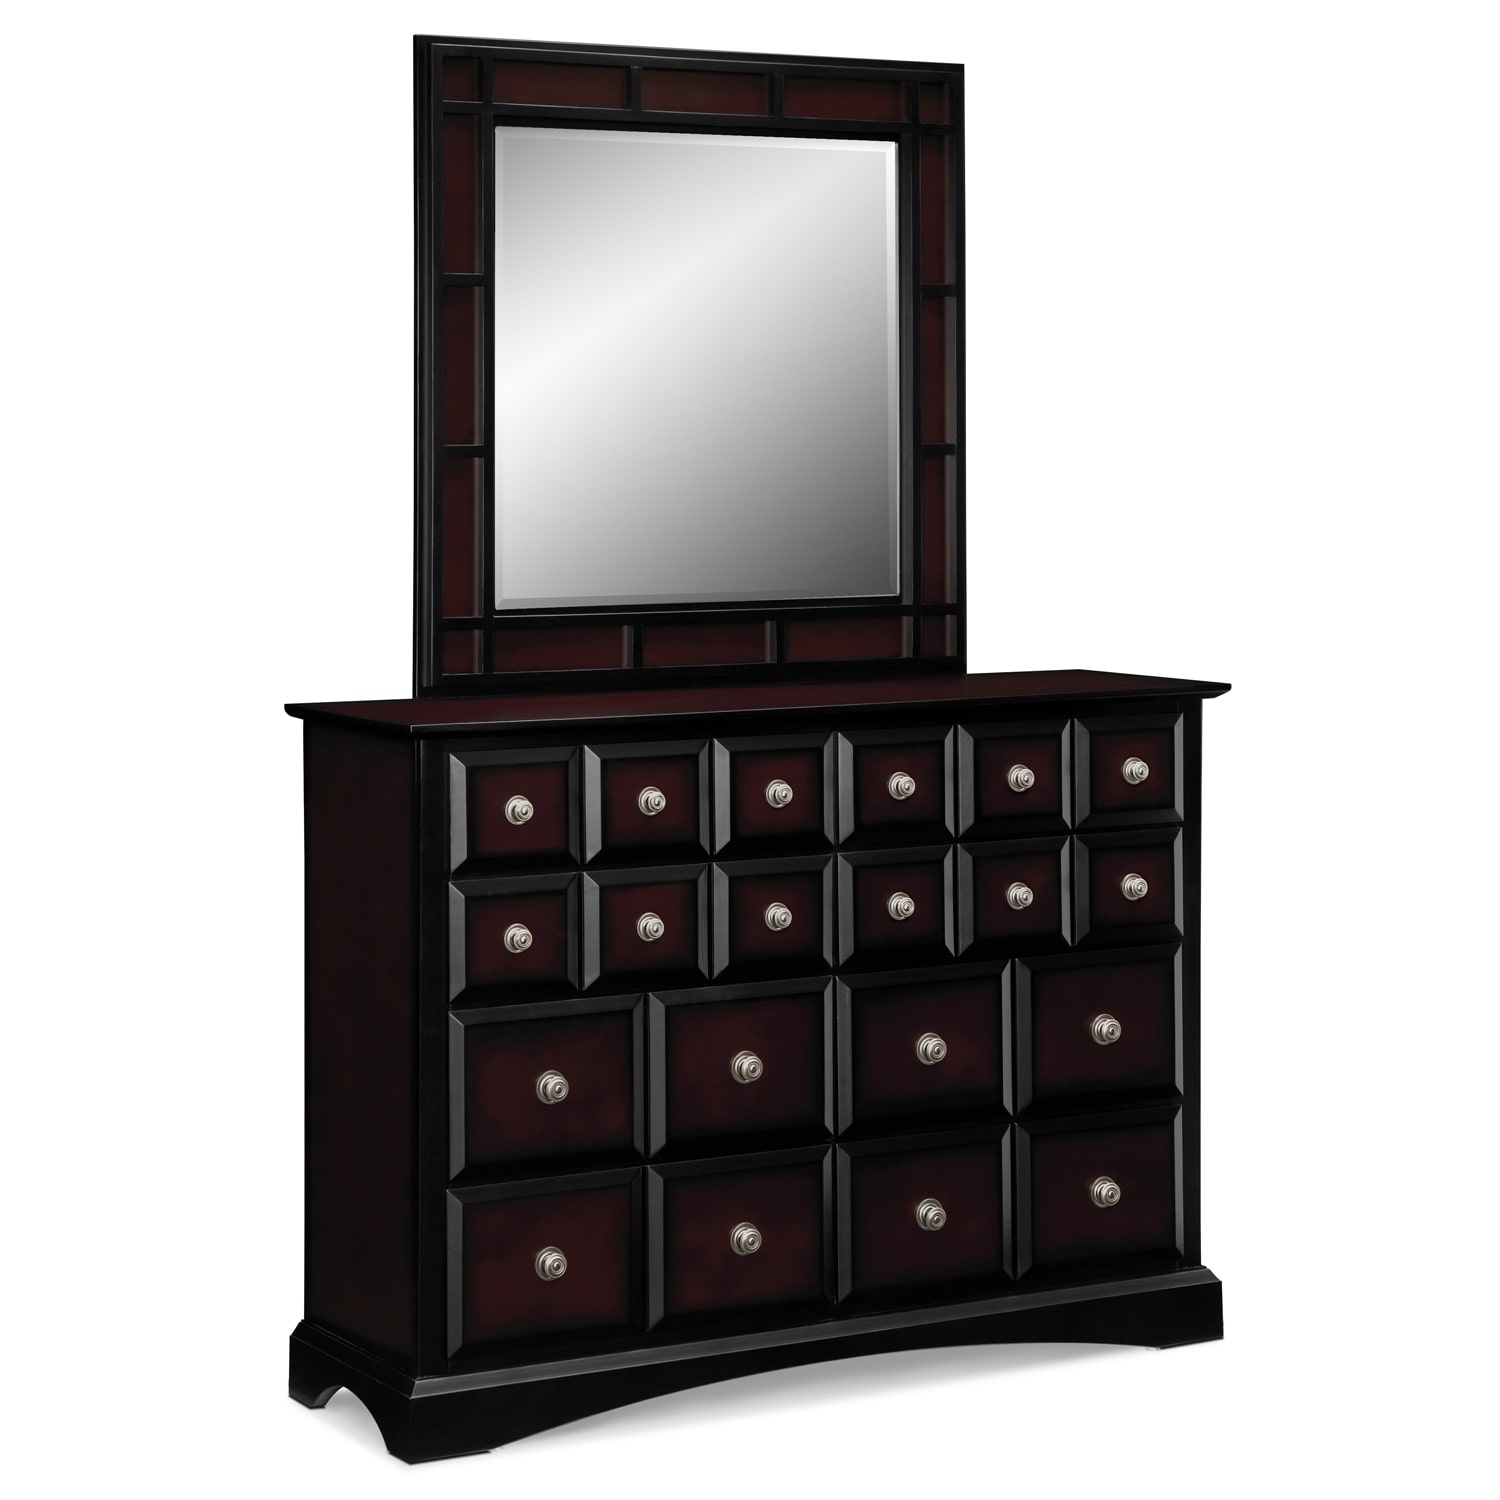 Winchester Dresser and Mirror - Black and Burnished Merlot